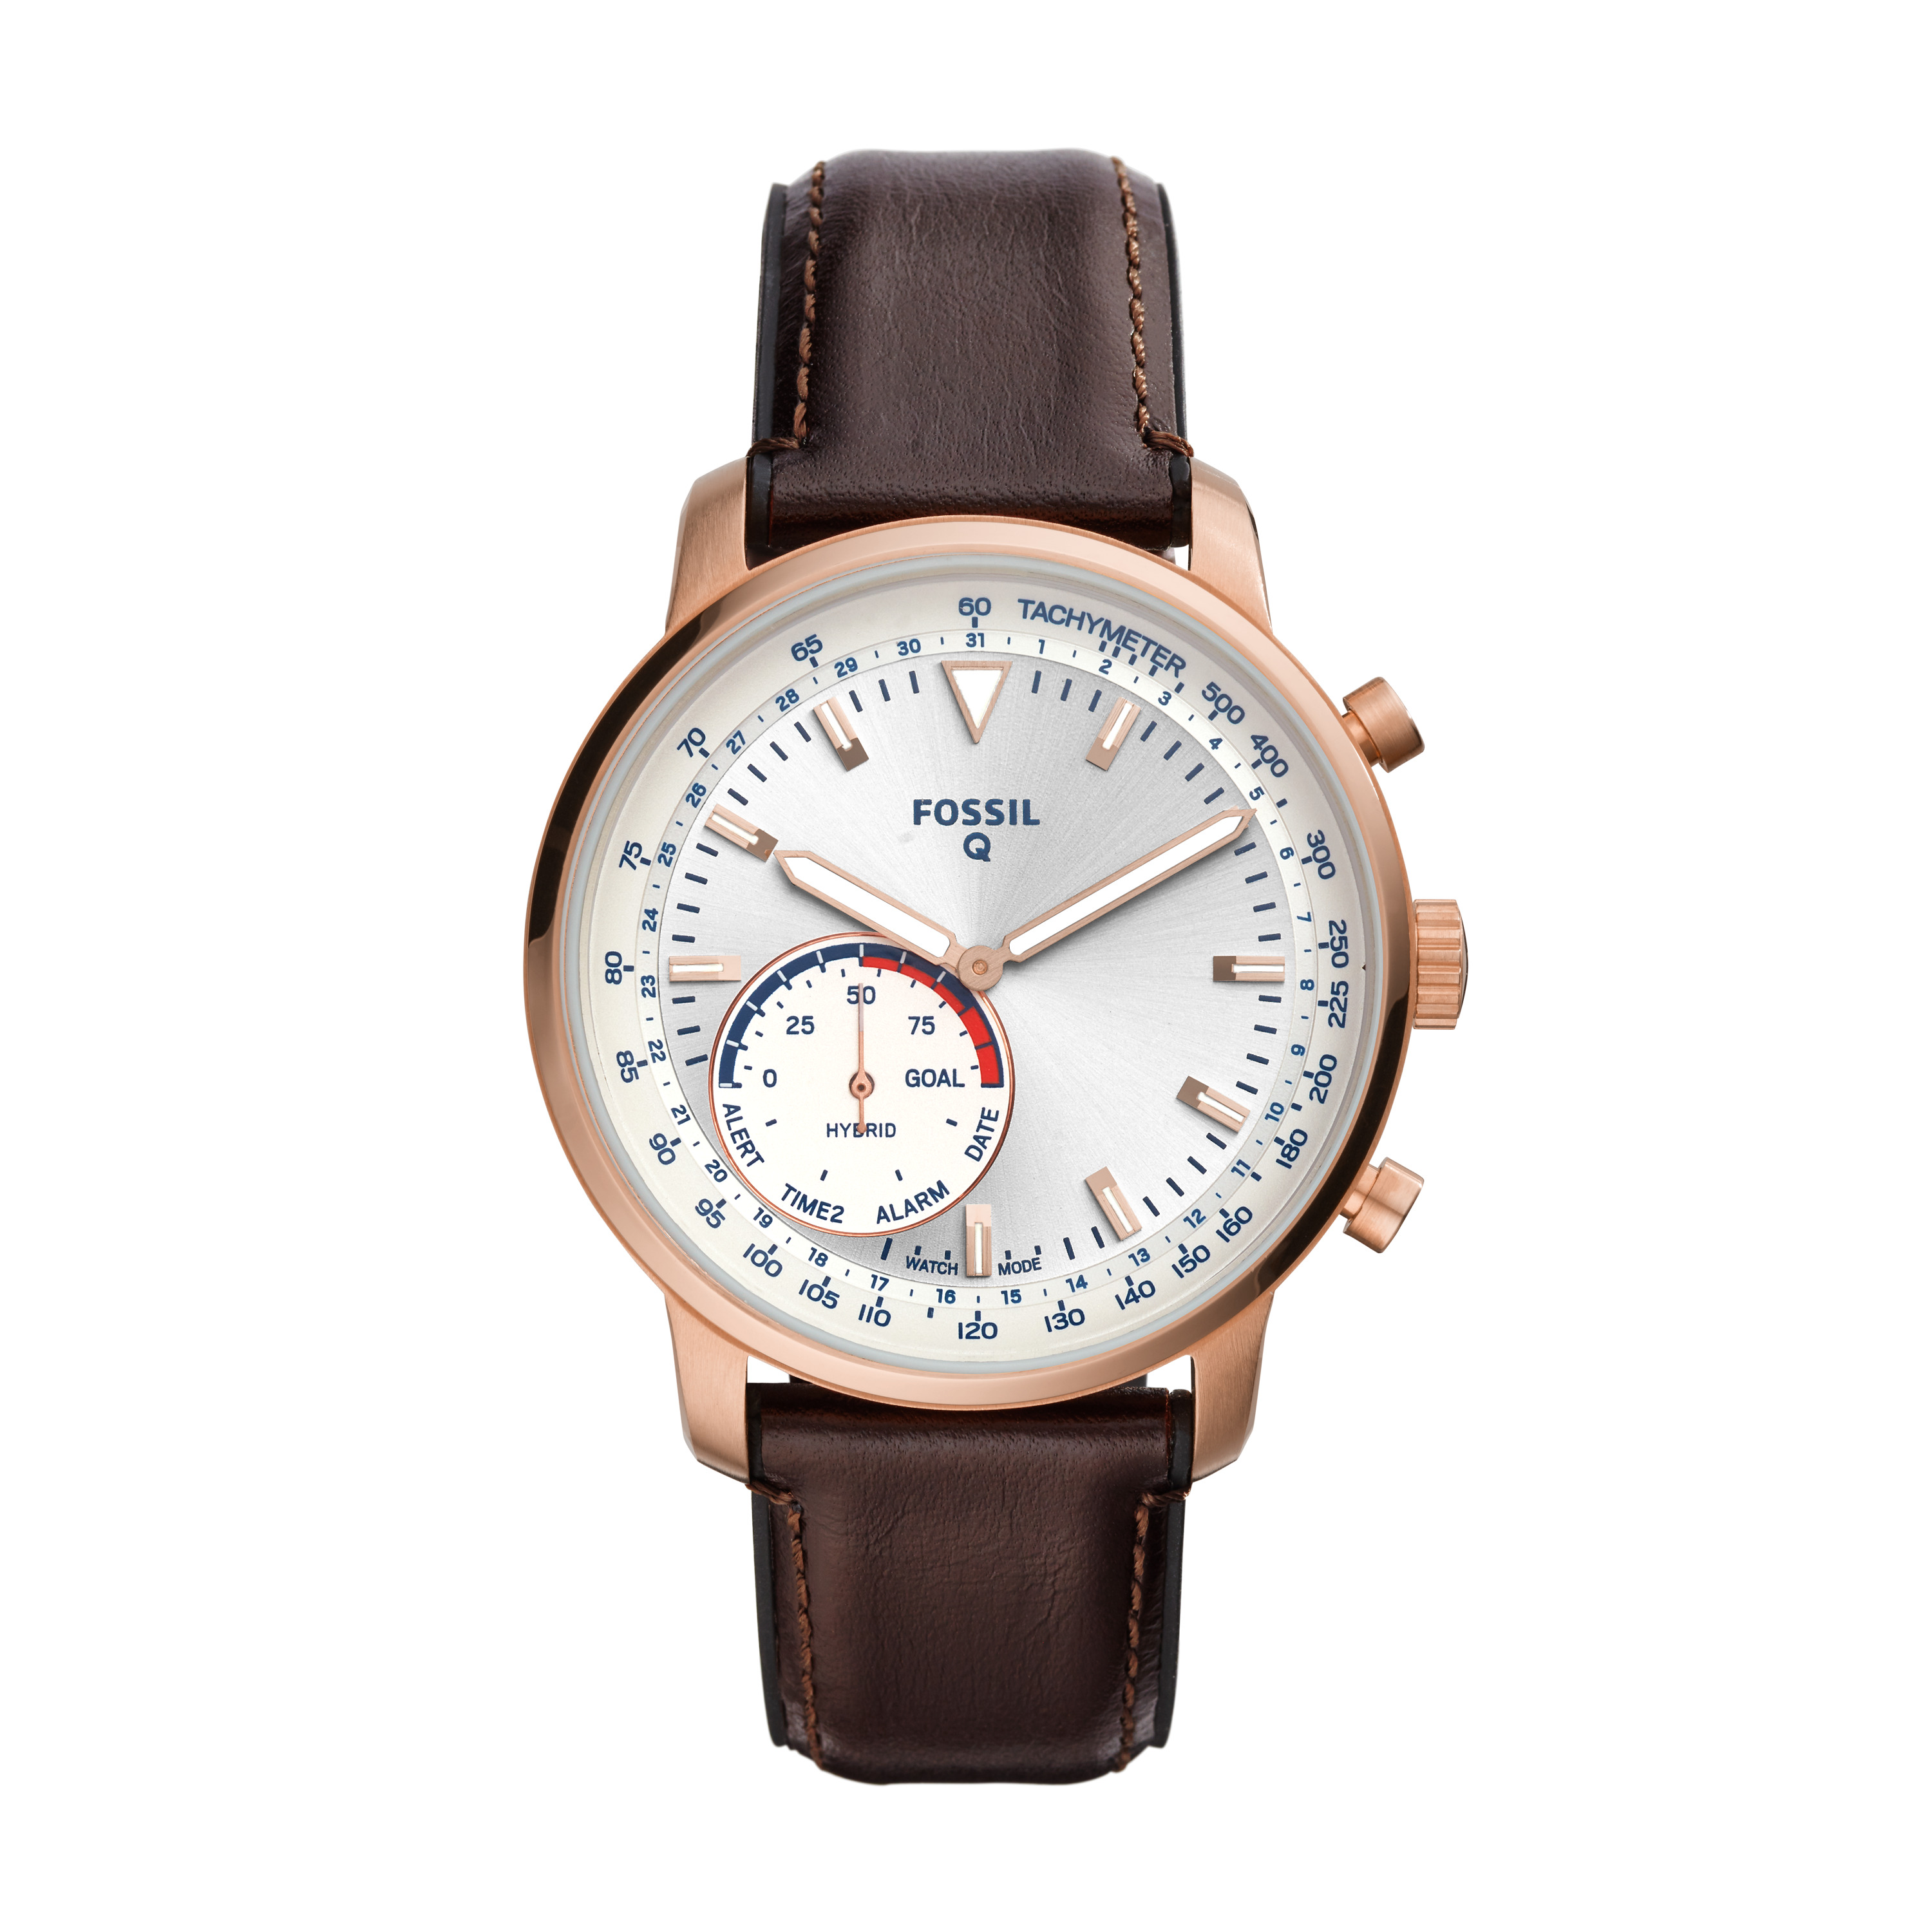 Fossil Citizen wearables smartwatches